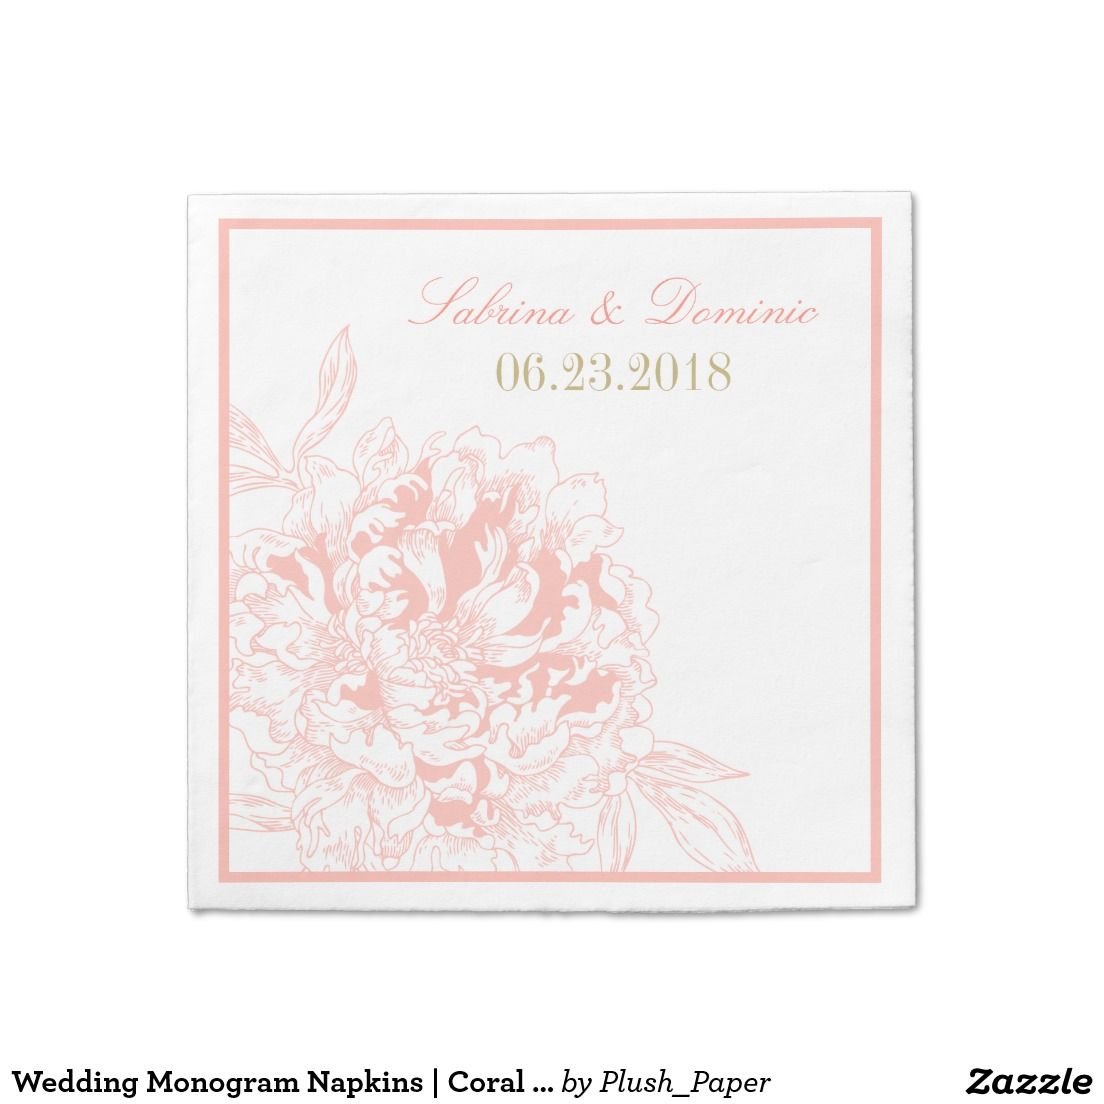 Wedding Monogram Napkins | Coral Peony Design